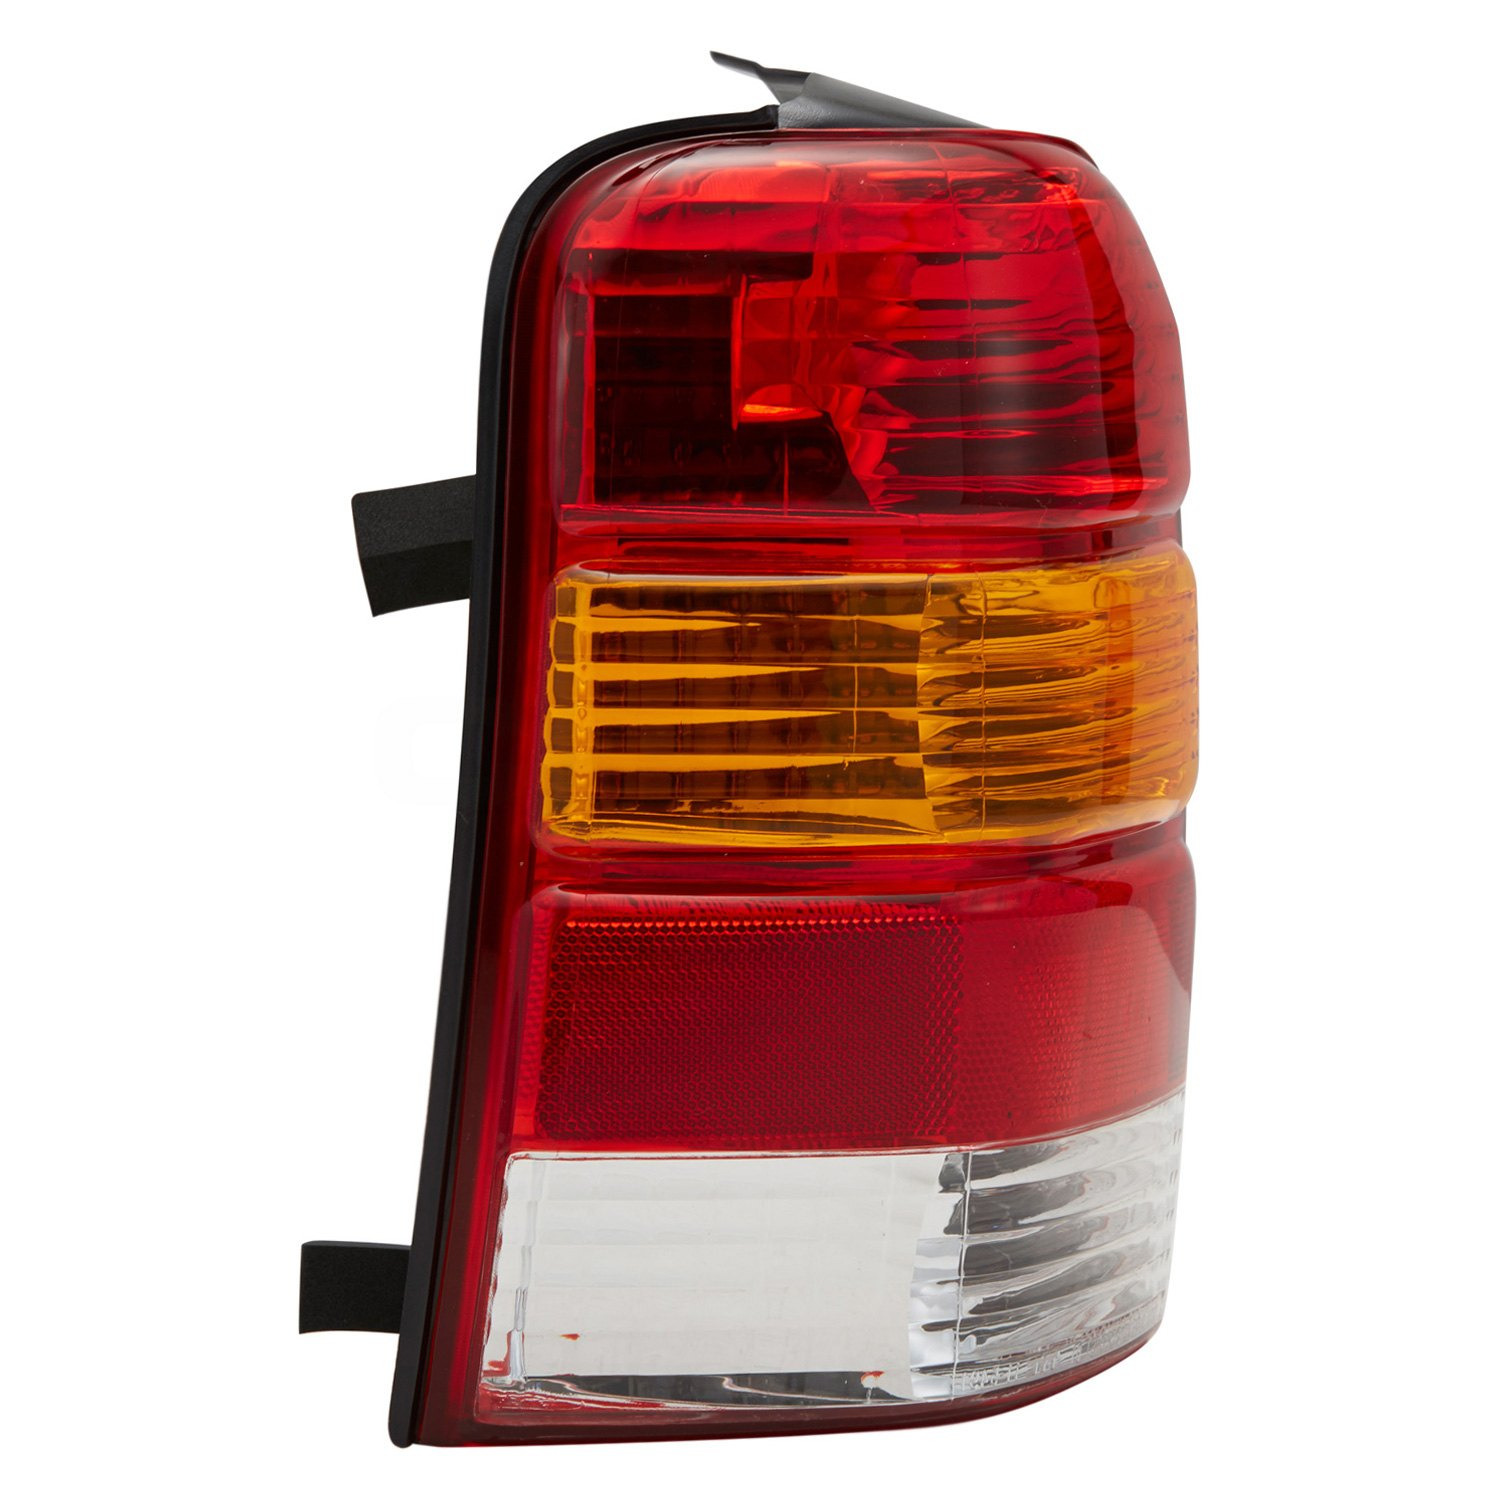 tyc ford escape 2001 2002 replacement tail light. Black Bedroom Furniture Sets. Home Design Ideas